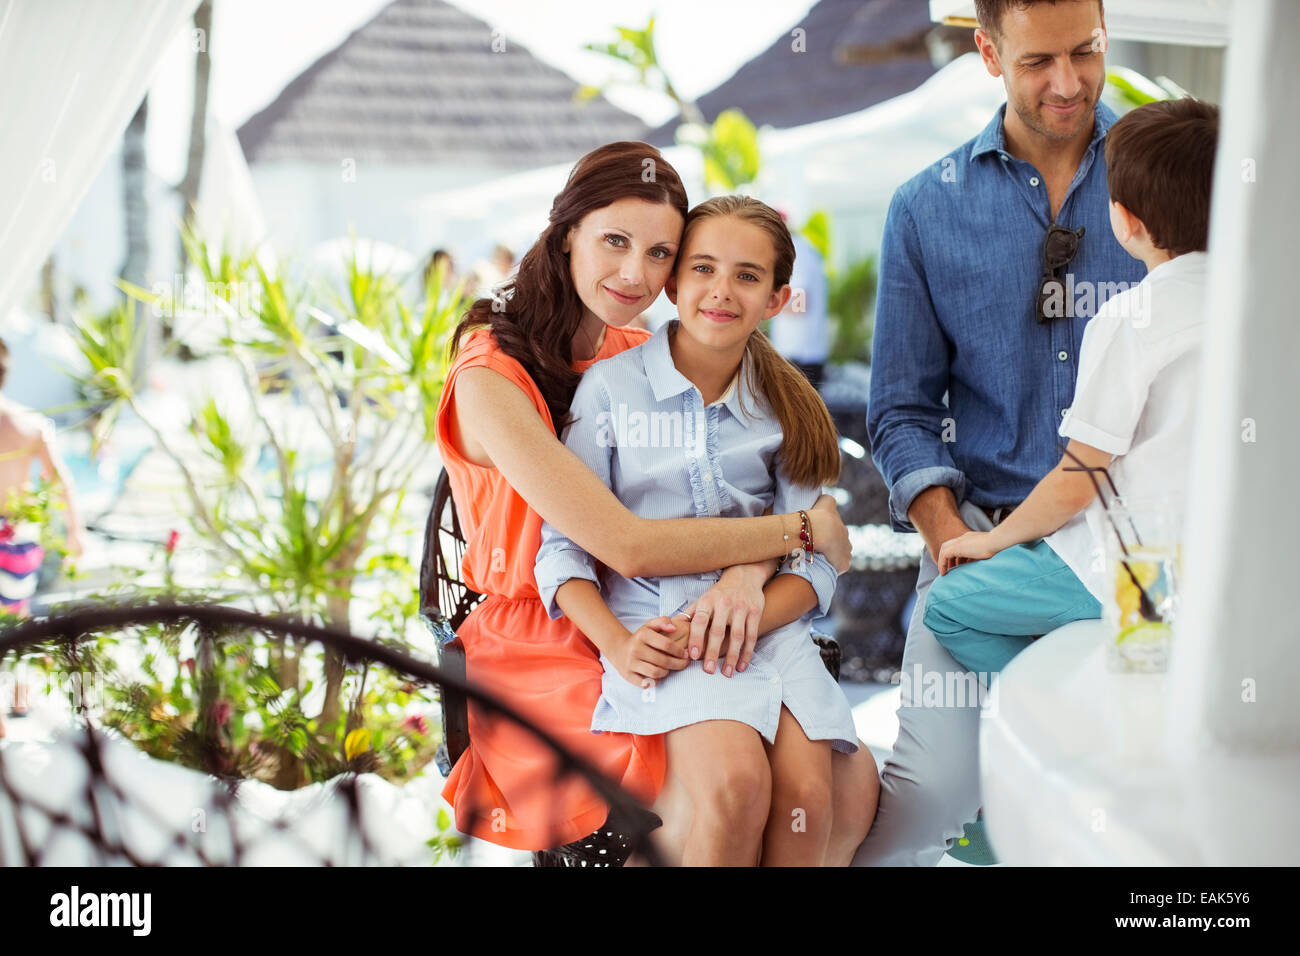 Happy family with two children relaxing in resort pool area - Stock Image